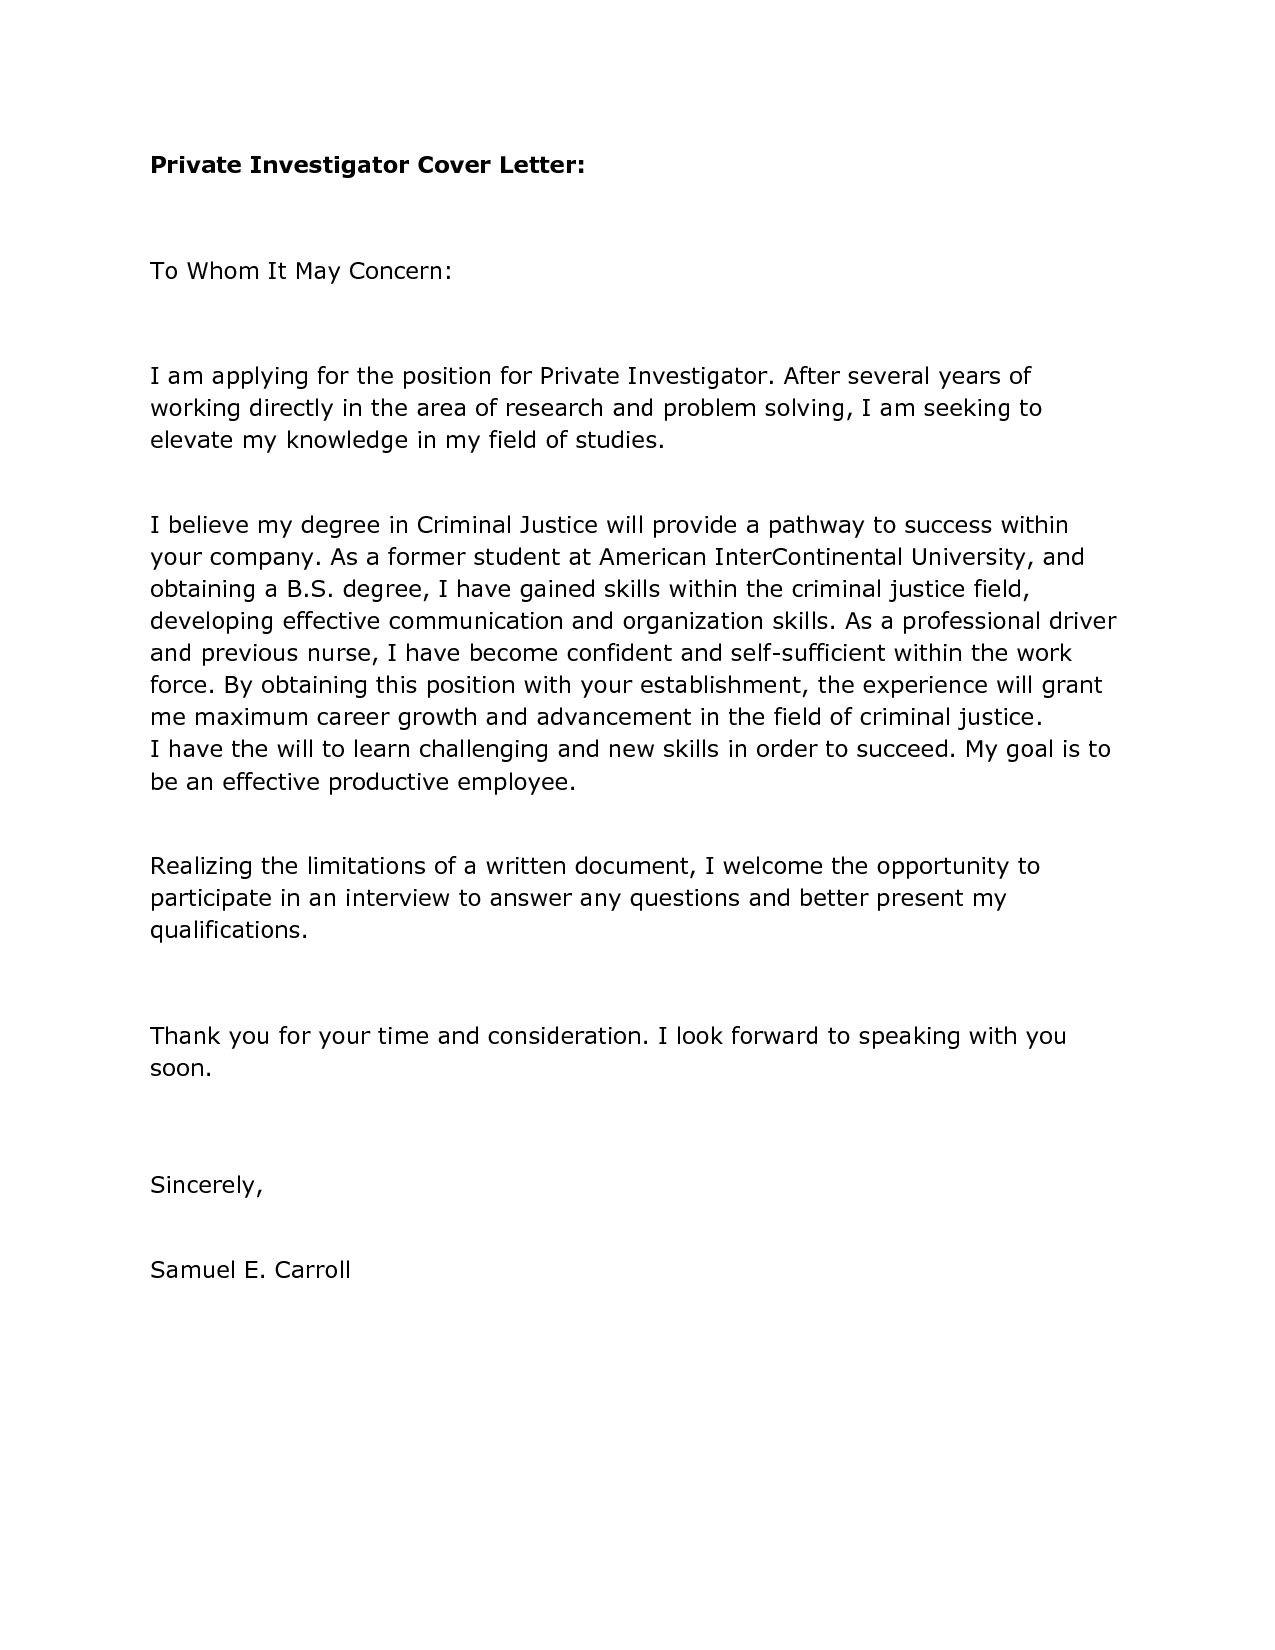 Cover letter for internship position criminal justice. Looking for ...